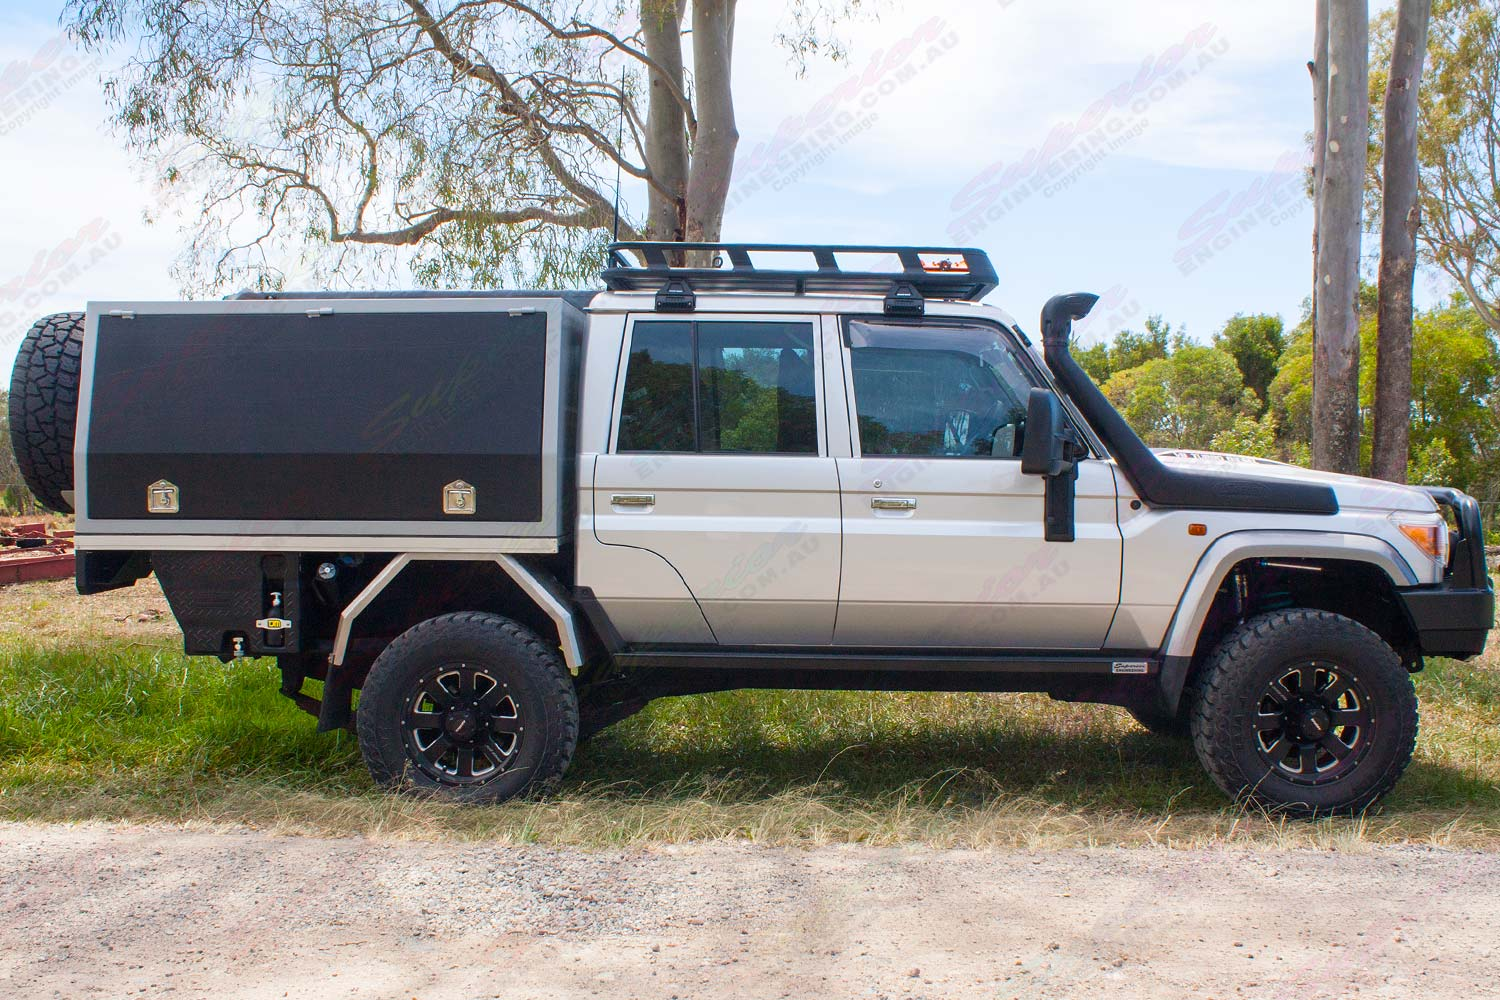 Right side view of a silver 79 Series Toyota Landcruiser (Dual Cab) fitted with a set of heavy duty Superior Engineering Stealth Rock Sliders